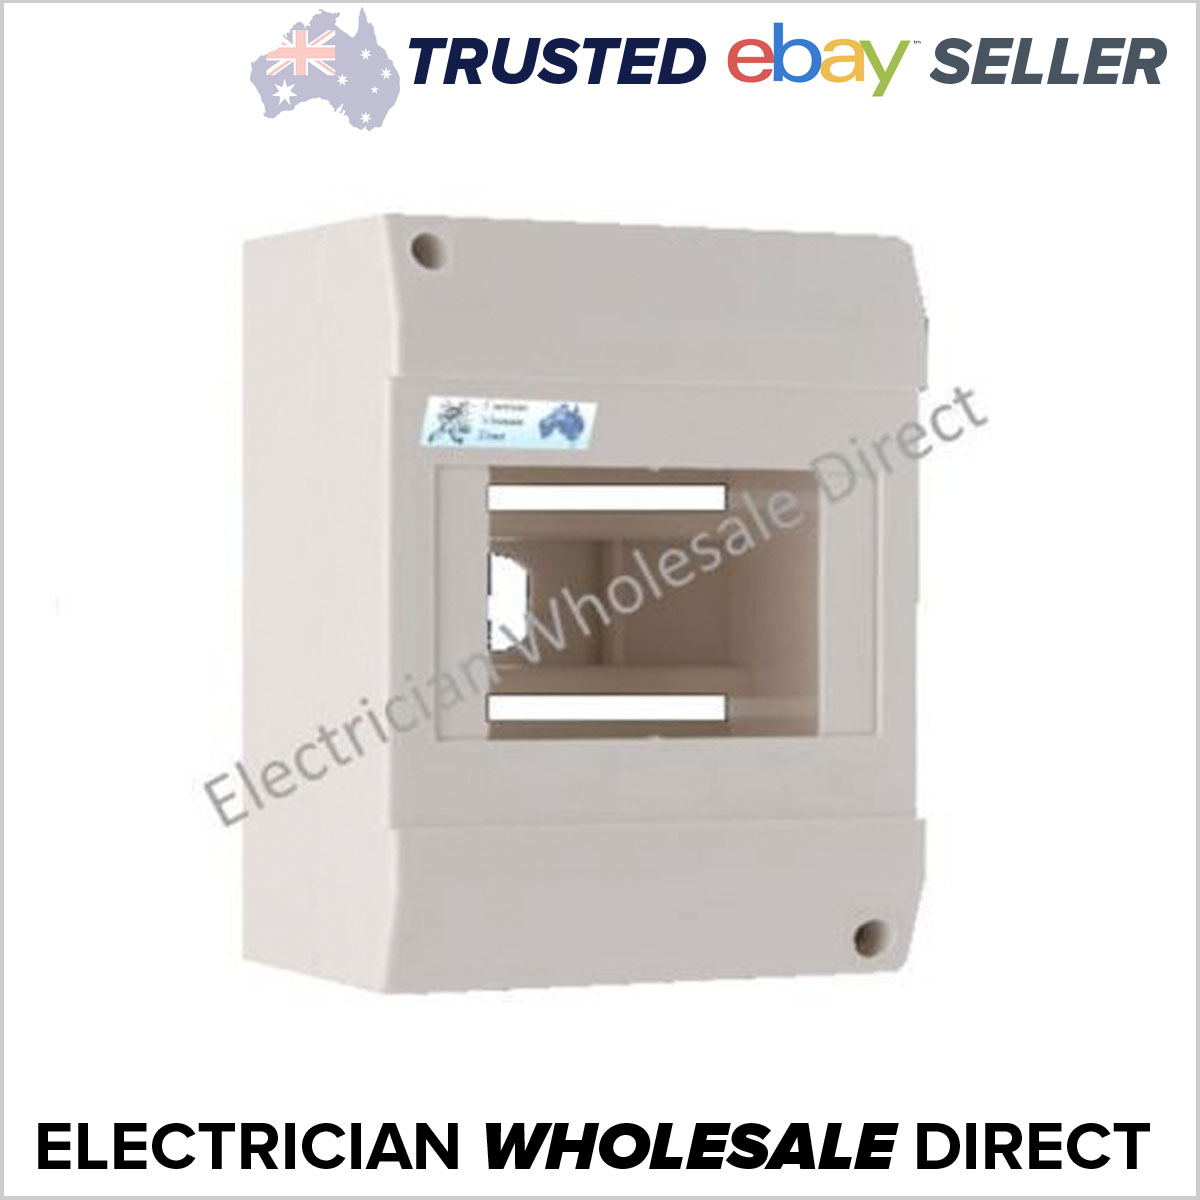 6 pole enclosure for circuit breakers switchboard electrical garageLoaded Combination Switchboard Enclosure Circuit Breaker Ebay #12